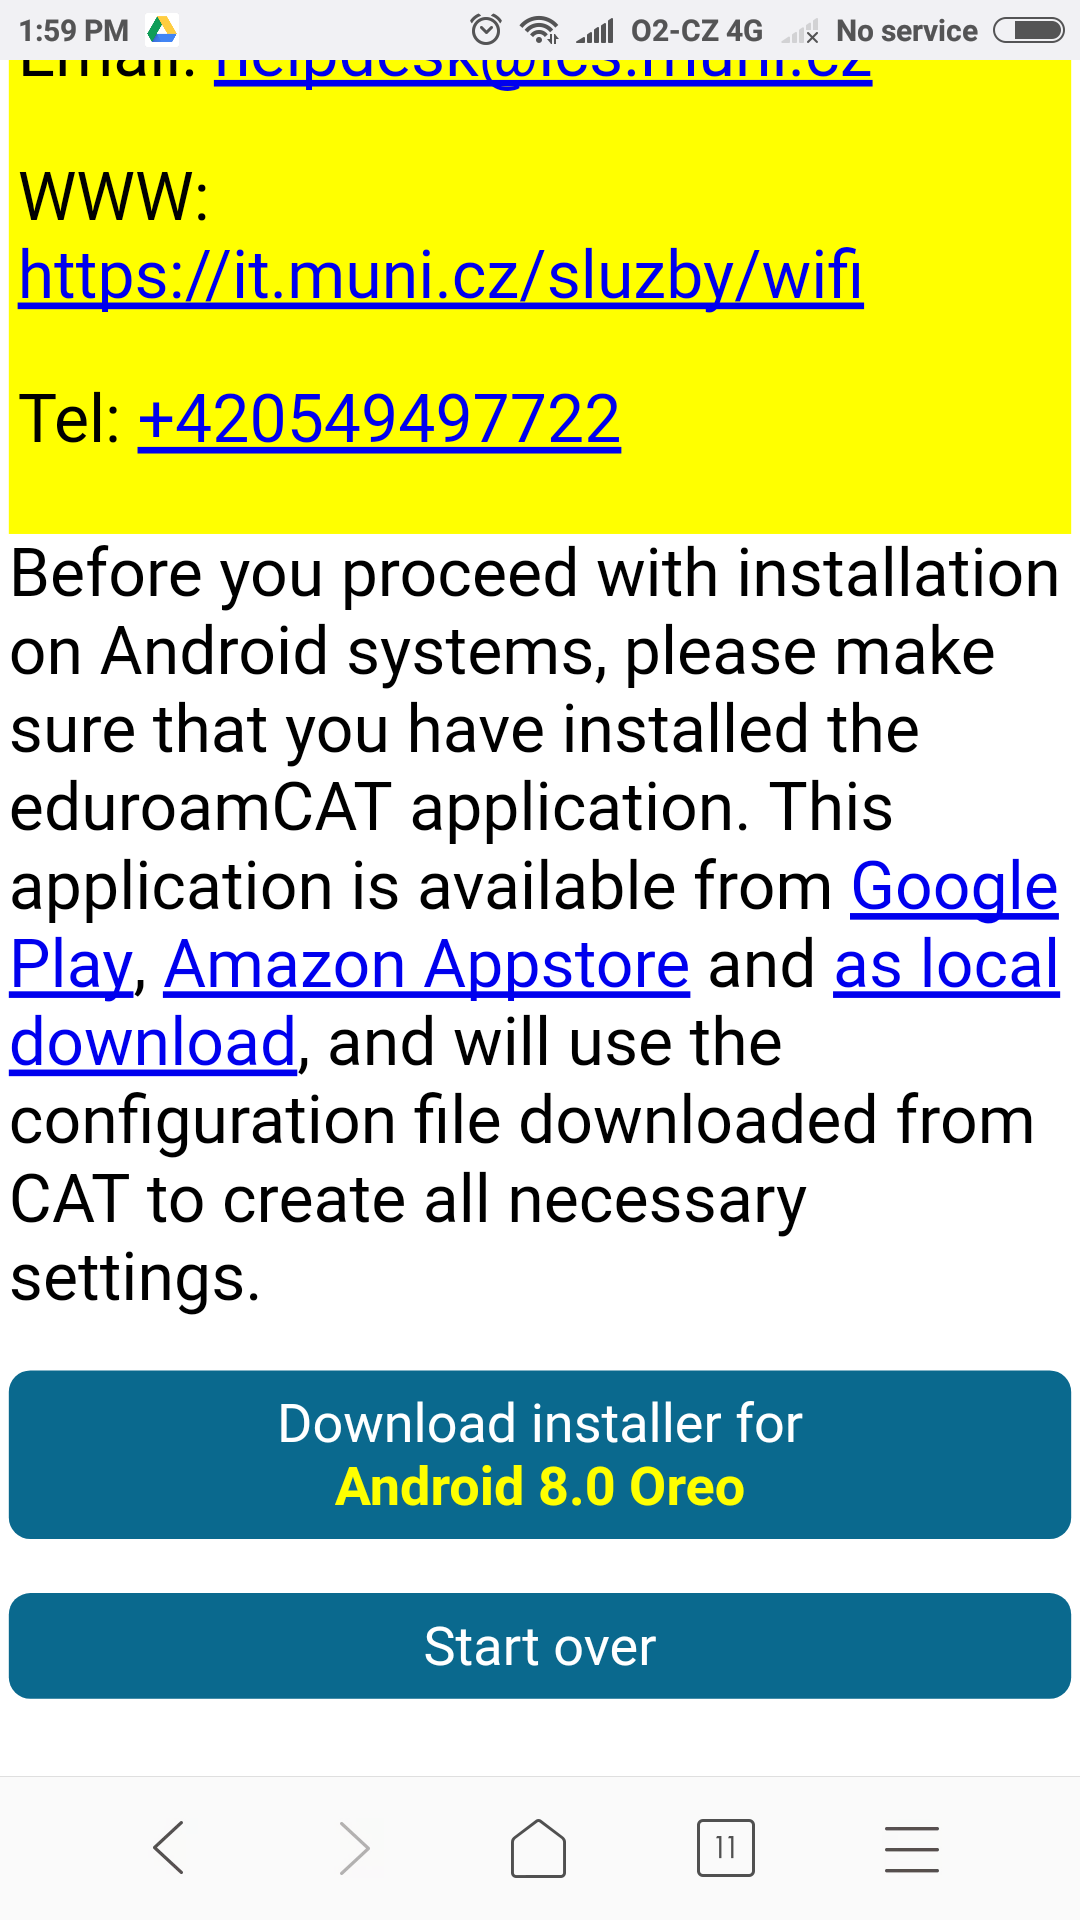 Eduroam for Android 4 3+ | IT services at Masaryk Univesity